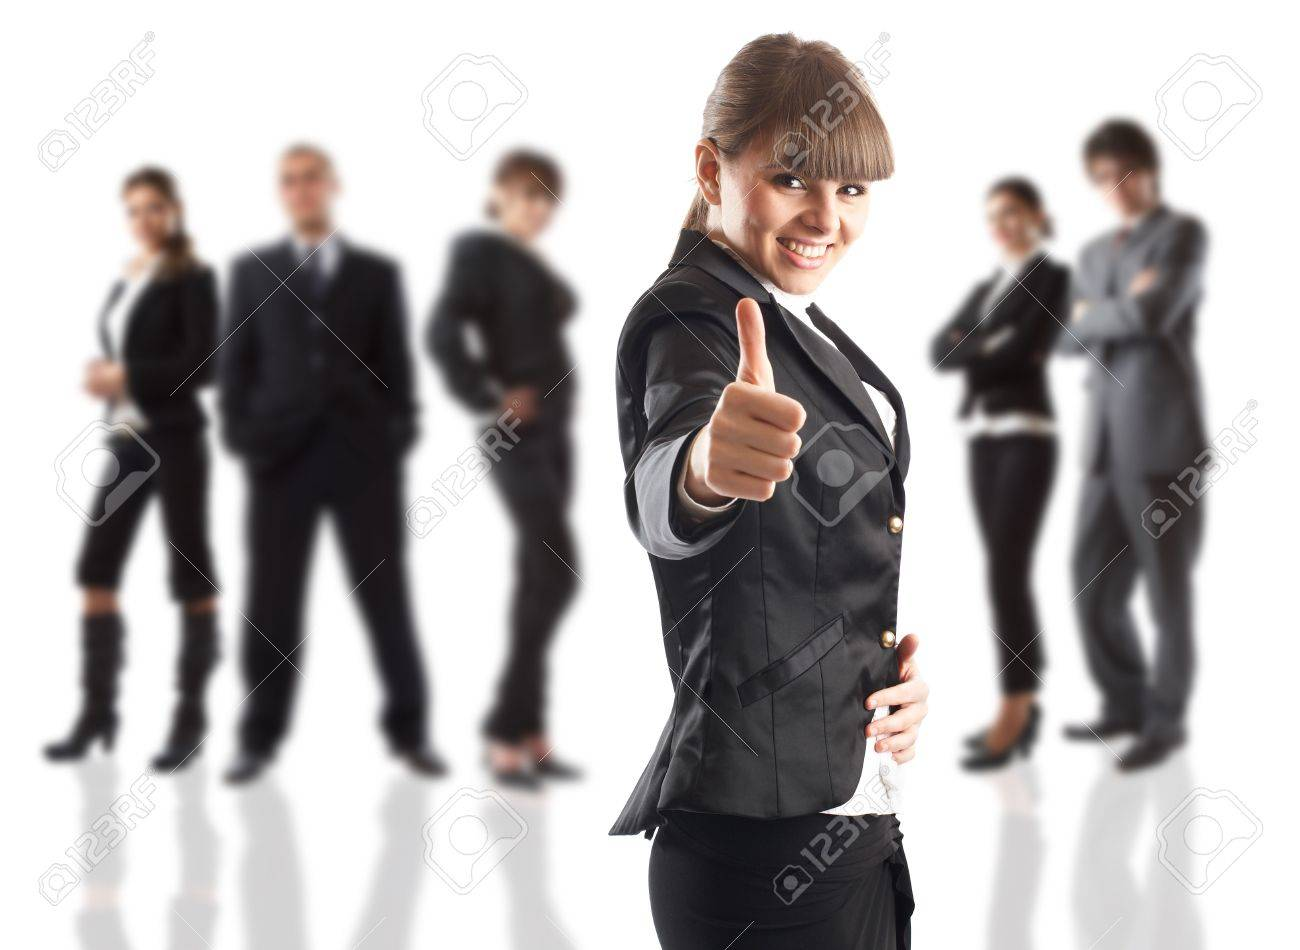 The Businesswoman - elite dream team - people in the background are out of focus Stock Photo - 1186357